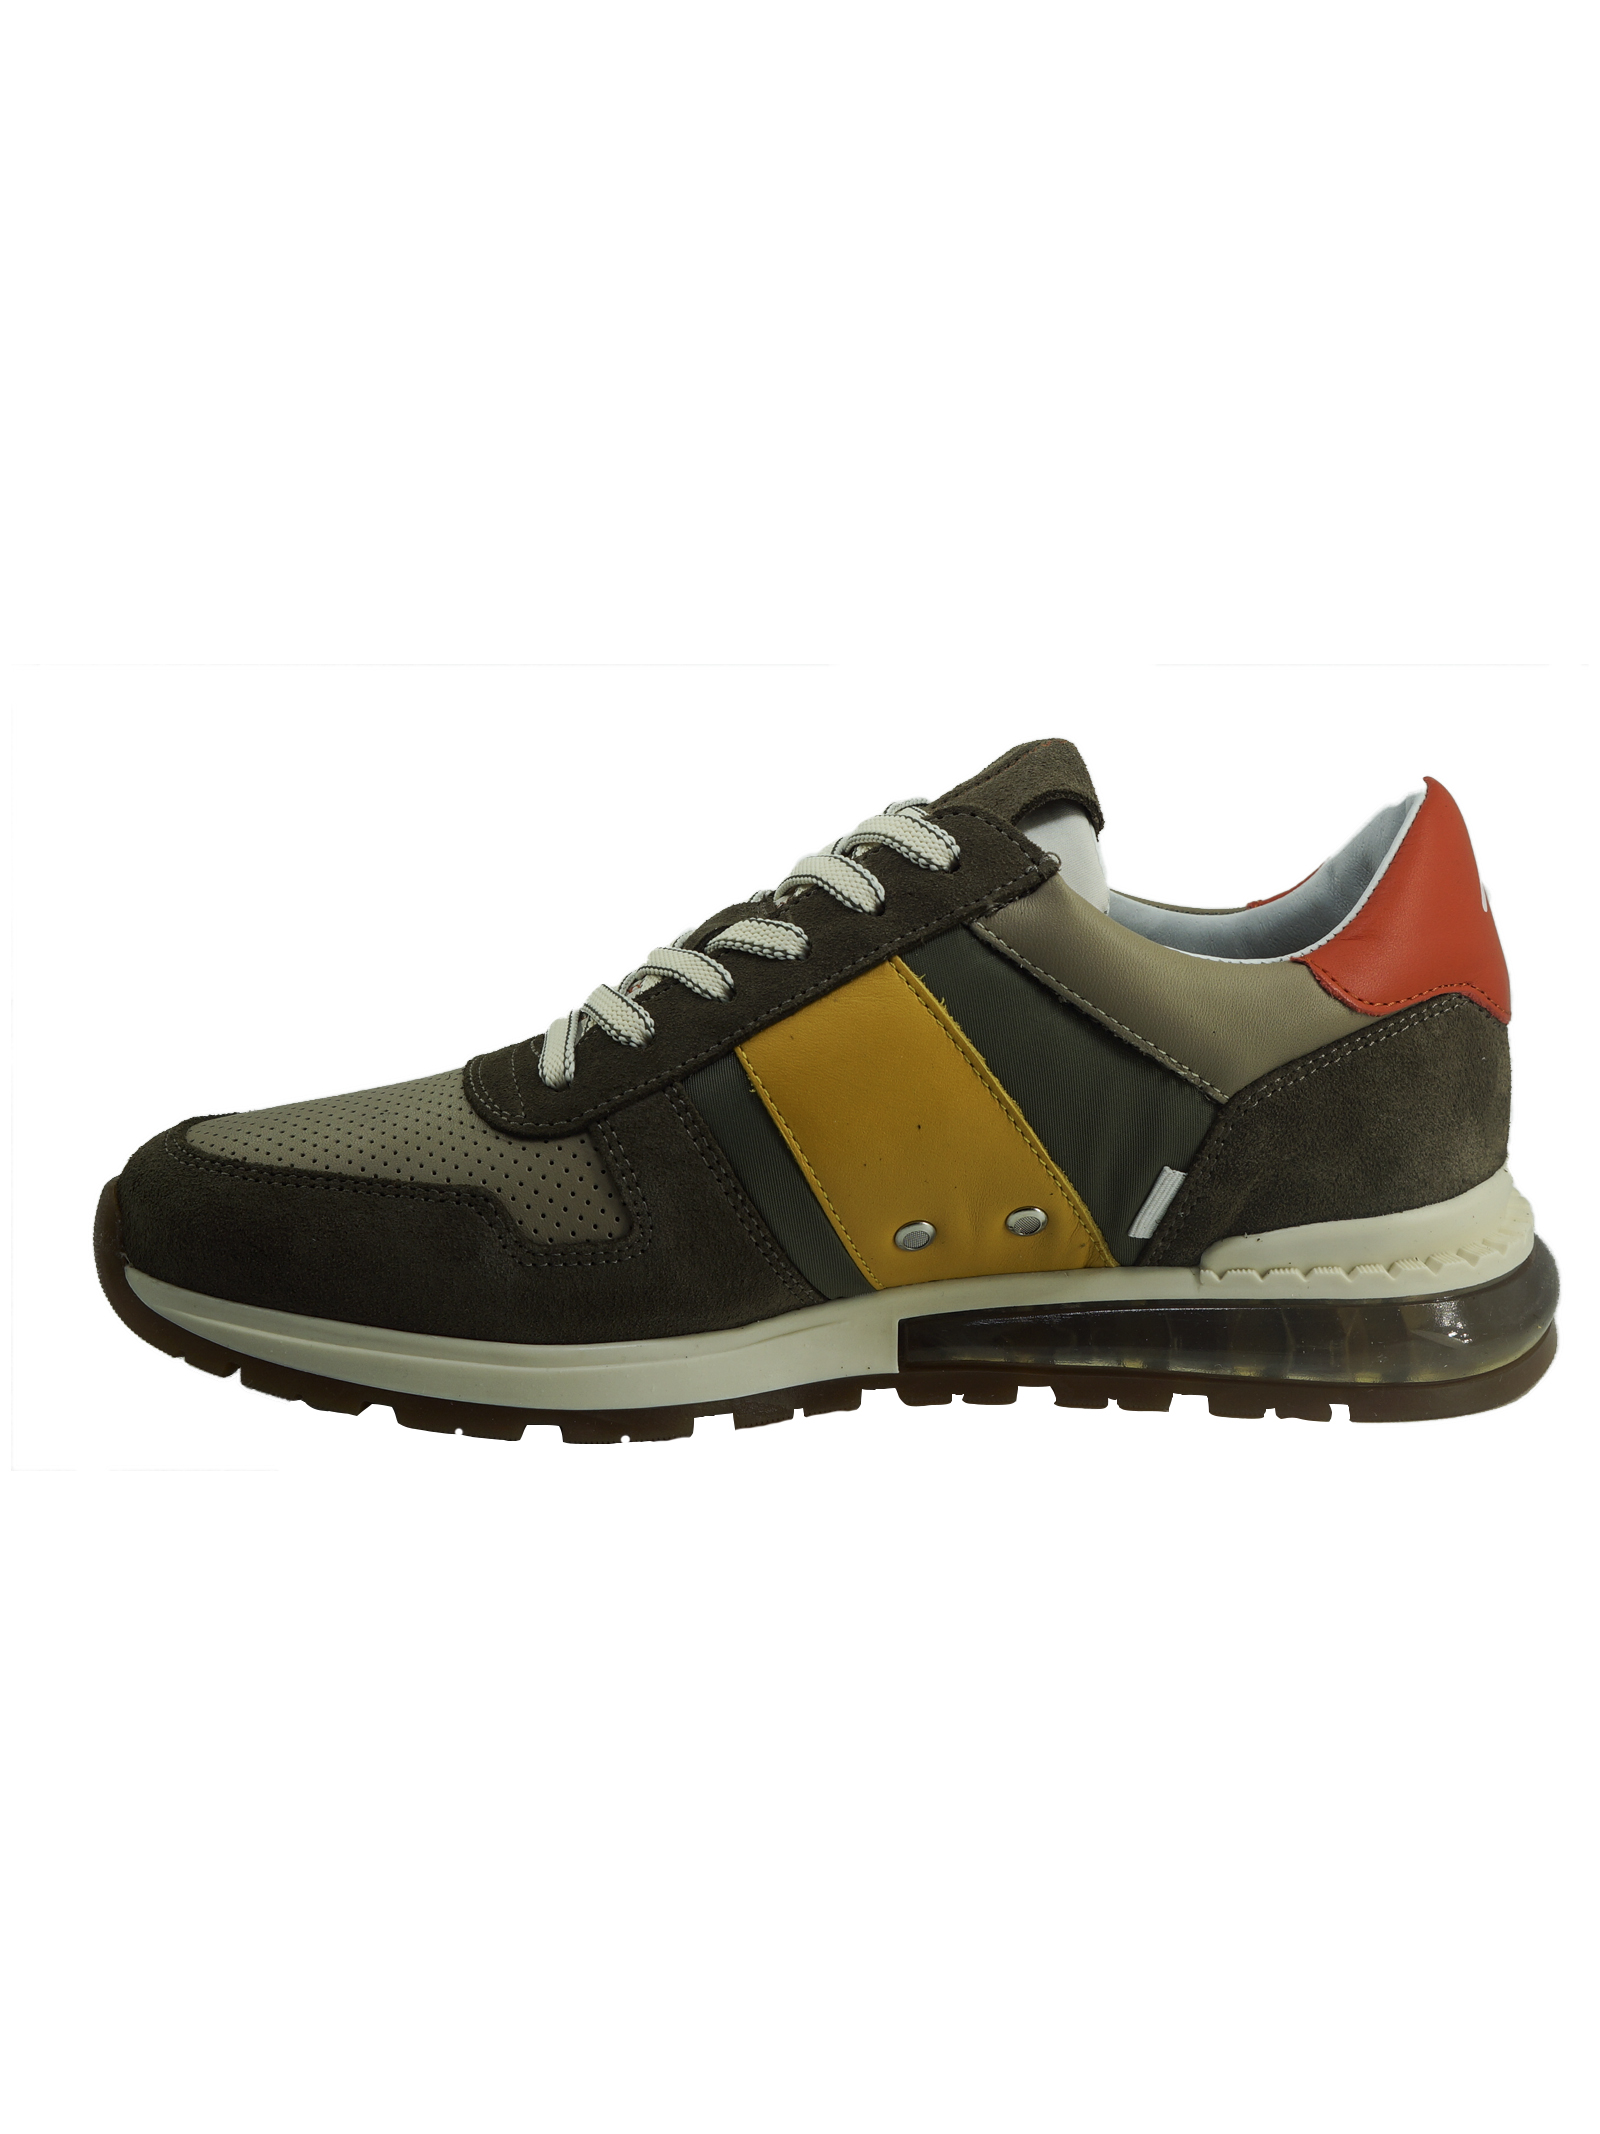 Sneakers Uomo in Pelle Ambitious Ambitious | Sneakers | 11469TAUPE